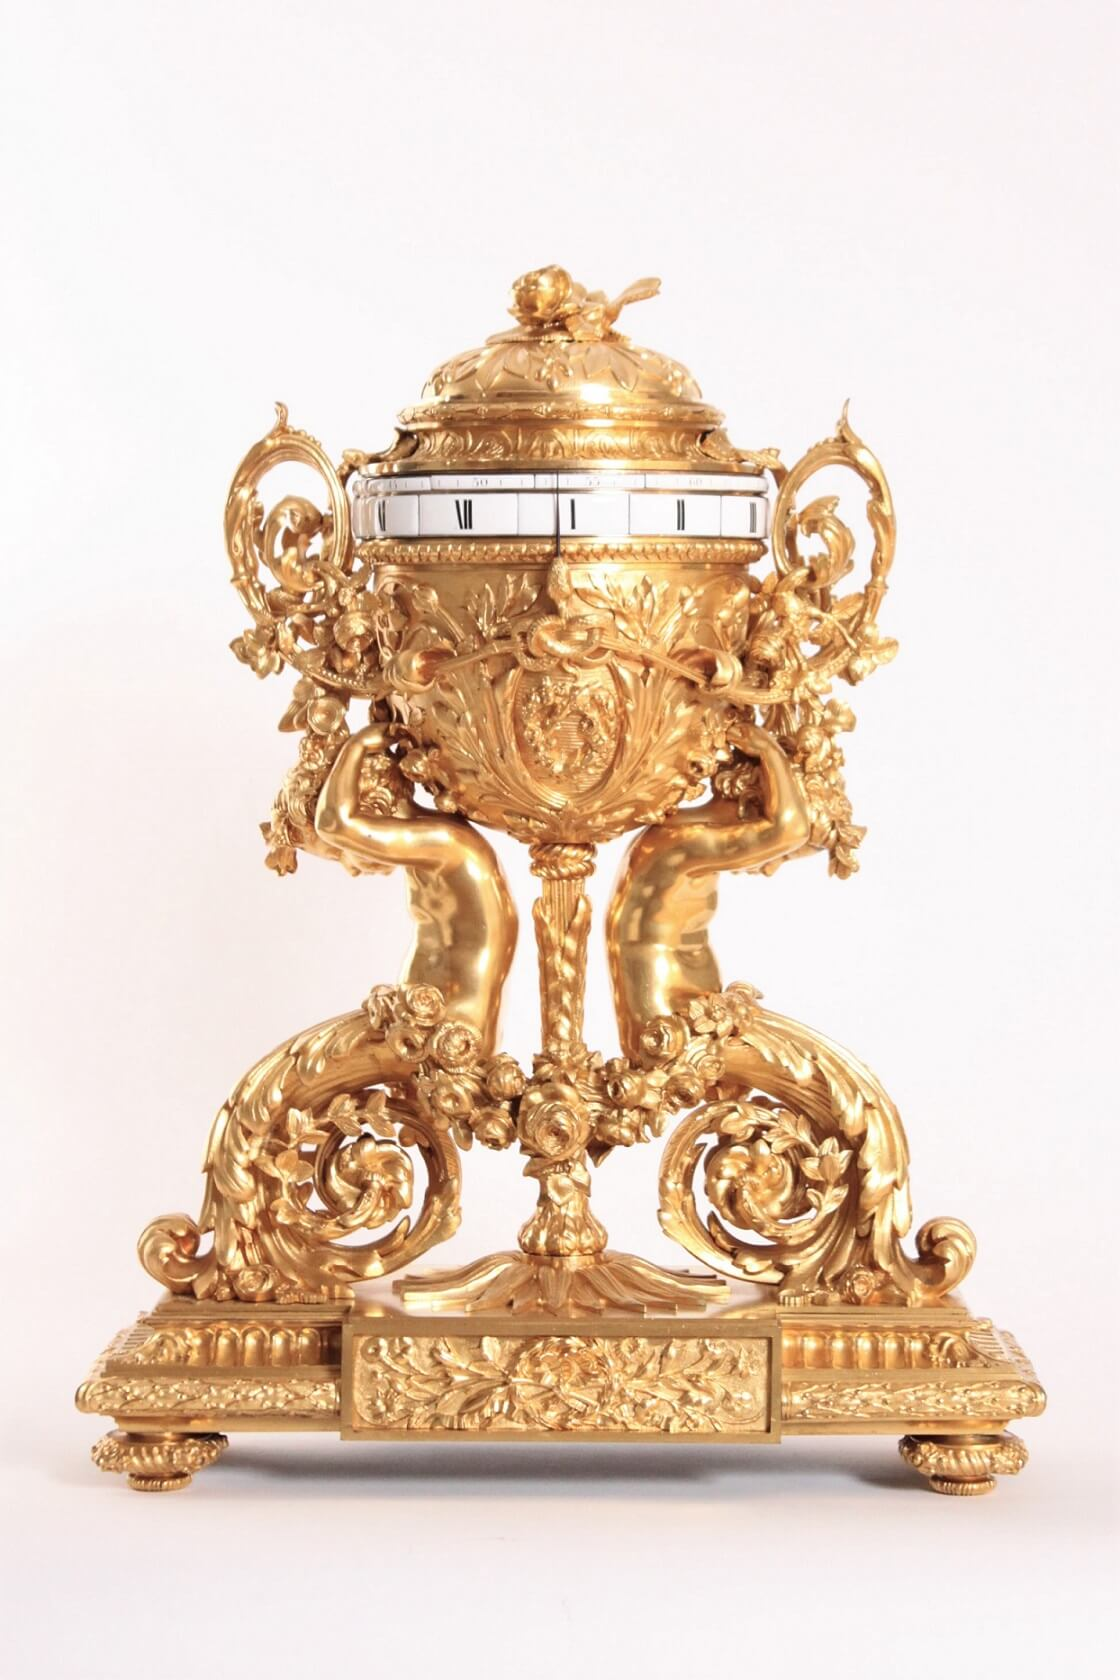 French-Napoleon III-sculptural-gilt-bronze-cercles-tournants-annular-antique-clock-renaissance-style-deniere-paris